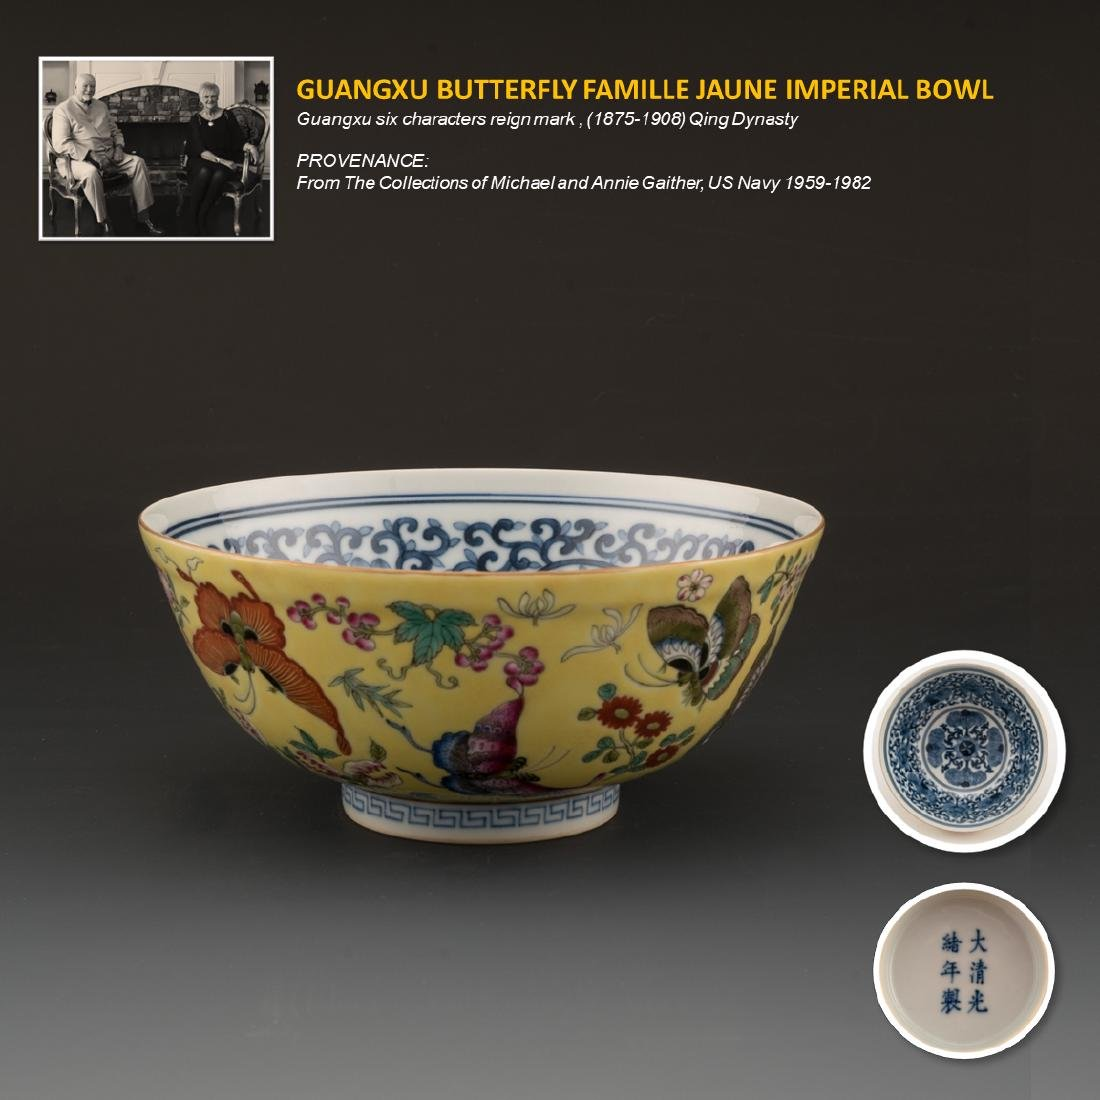 GUANGXU BUTTERFLY FAMILLE JAUNE IMPERIAL BOWL